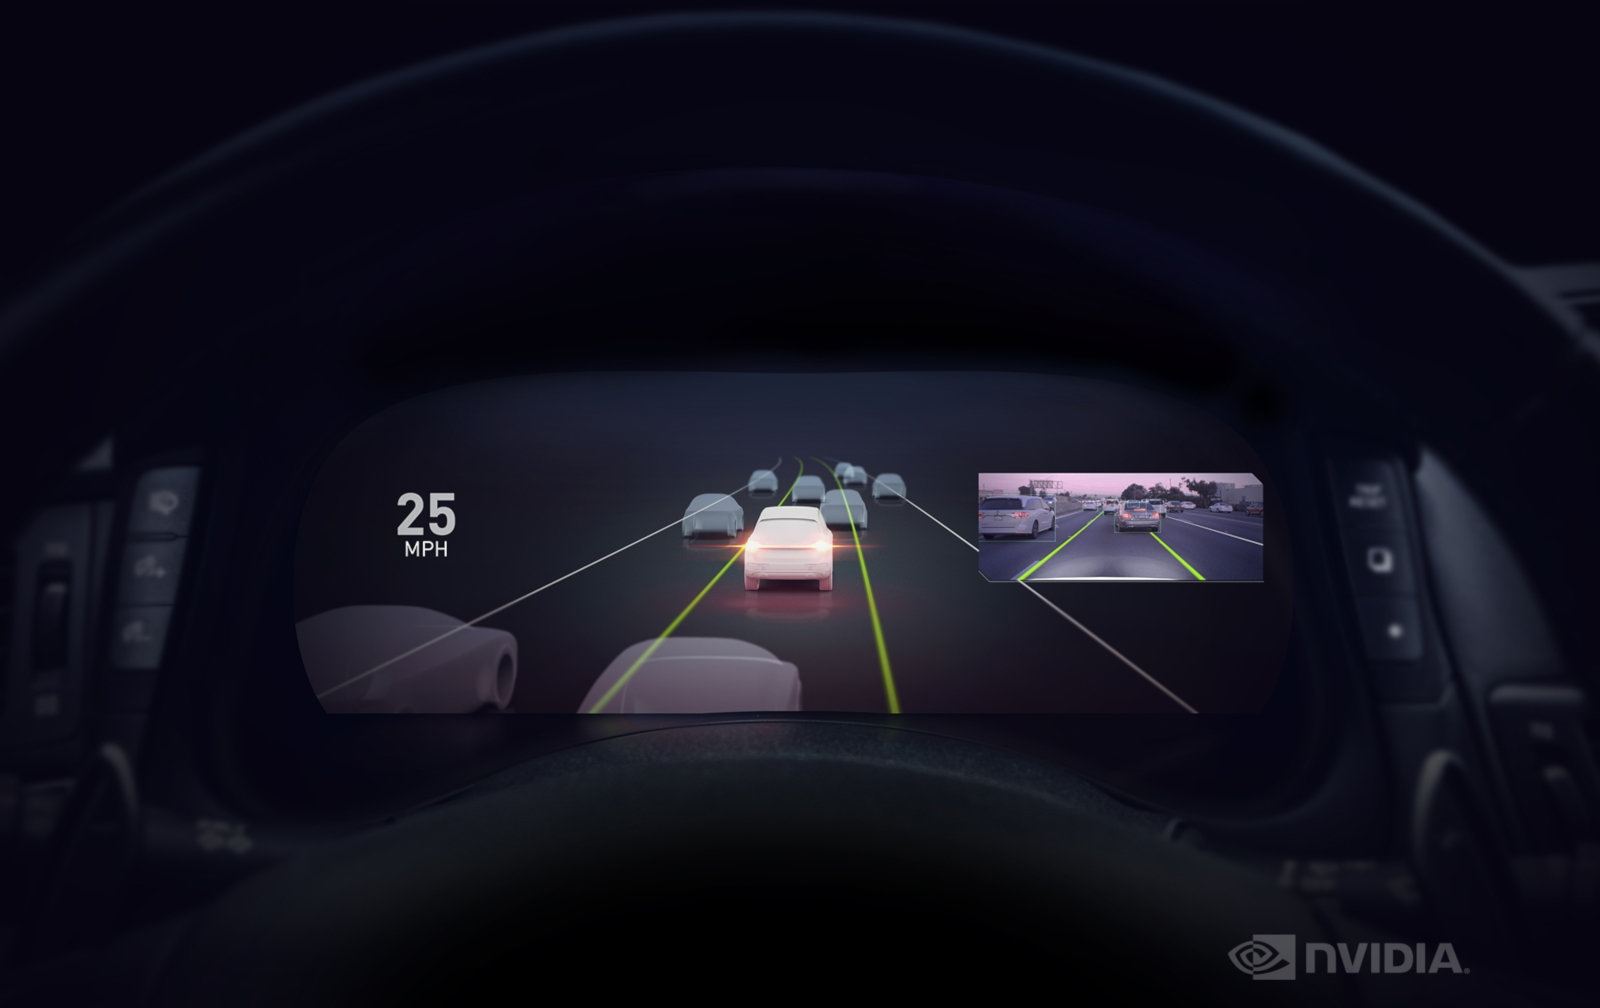 NVIDIA's Drive AutoPilot gives vehicles driver assistance features | DeviceDaily.com